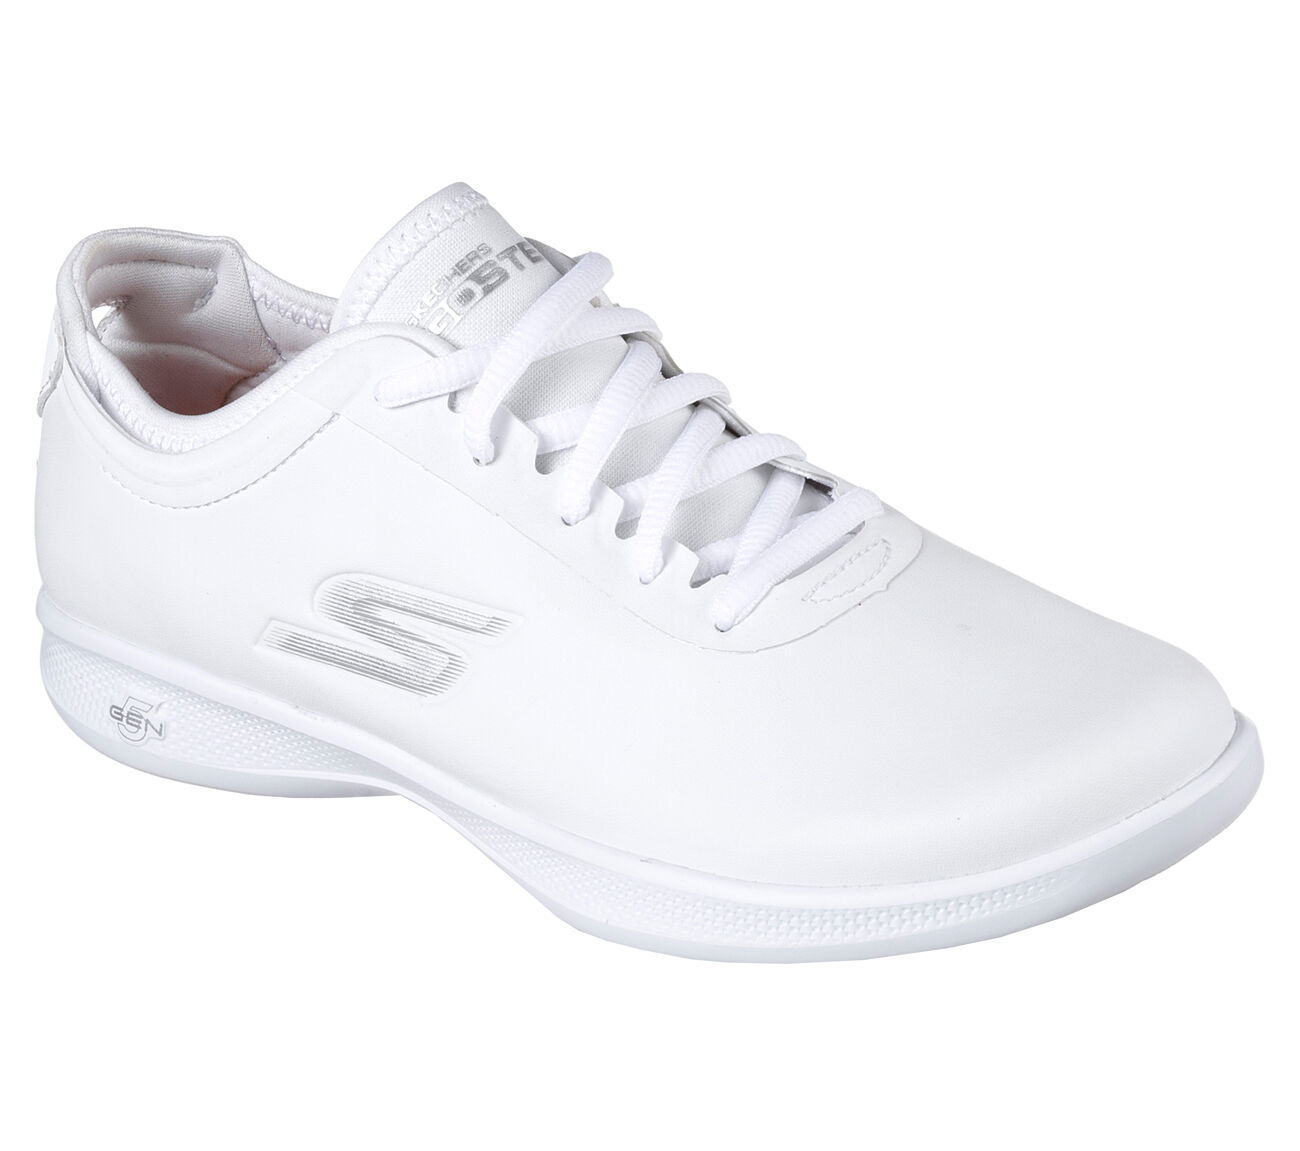 NEW WOMEN'S MAX SKECHERS ATHLETIC CUSHION LITE OVATION GOGA MAX WOMEN'S Weiß SNEAKERS 14489 85c674